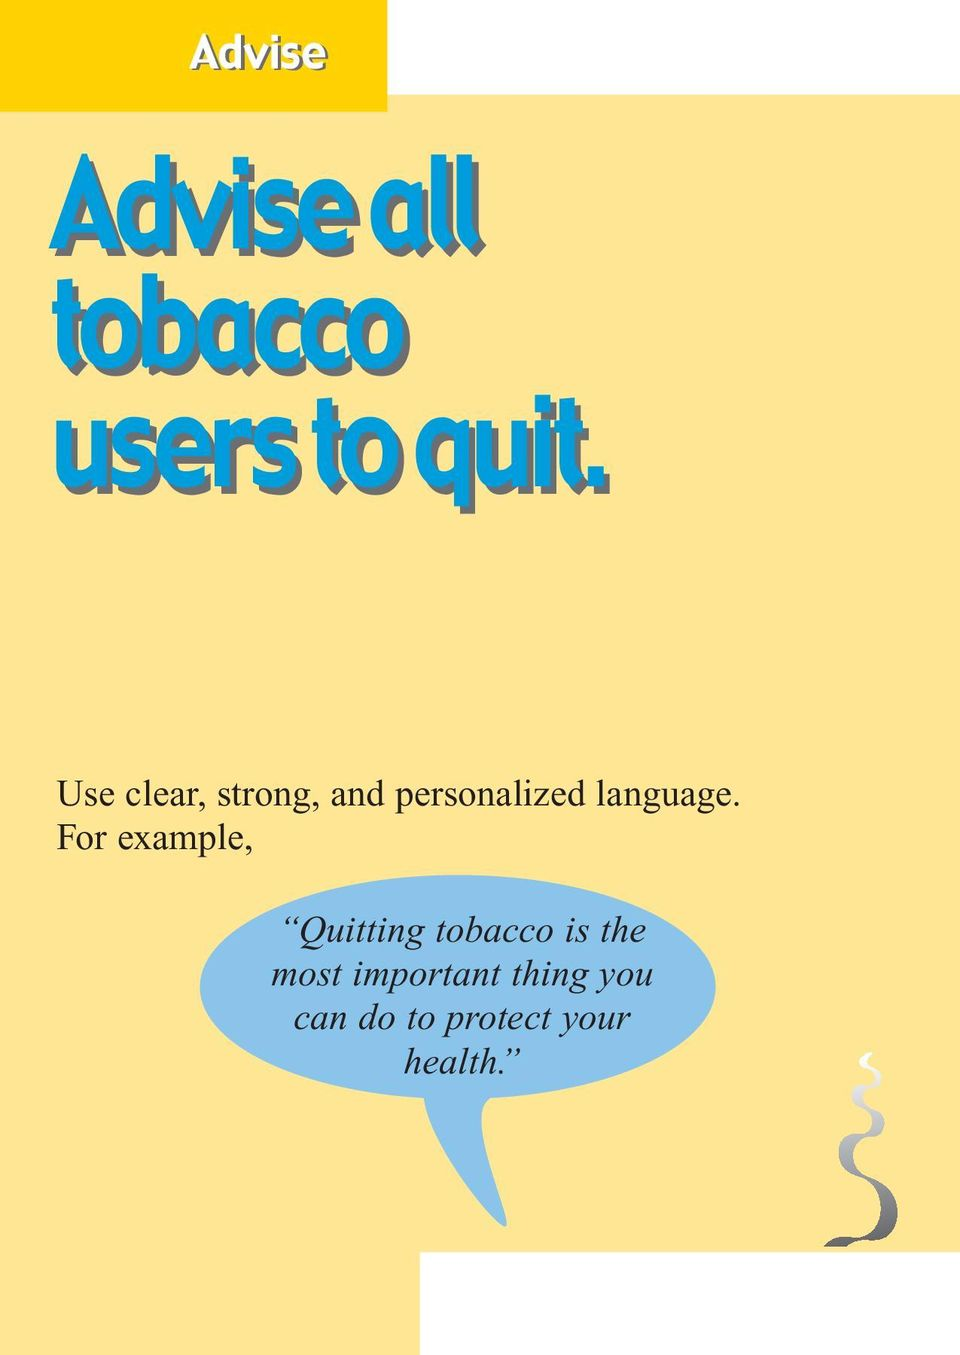 For example, Quitting tobacco is the most